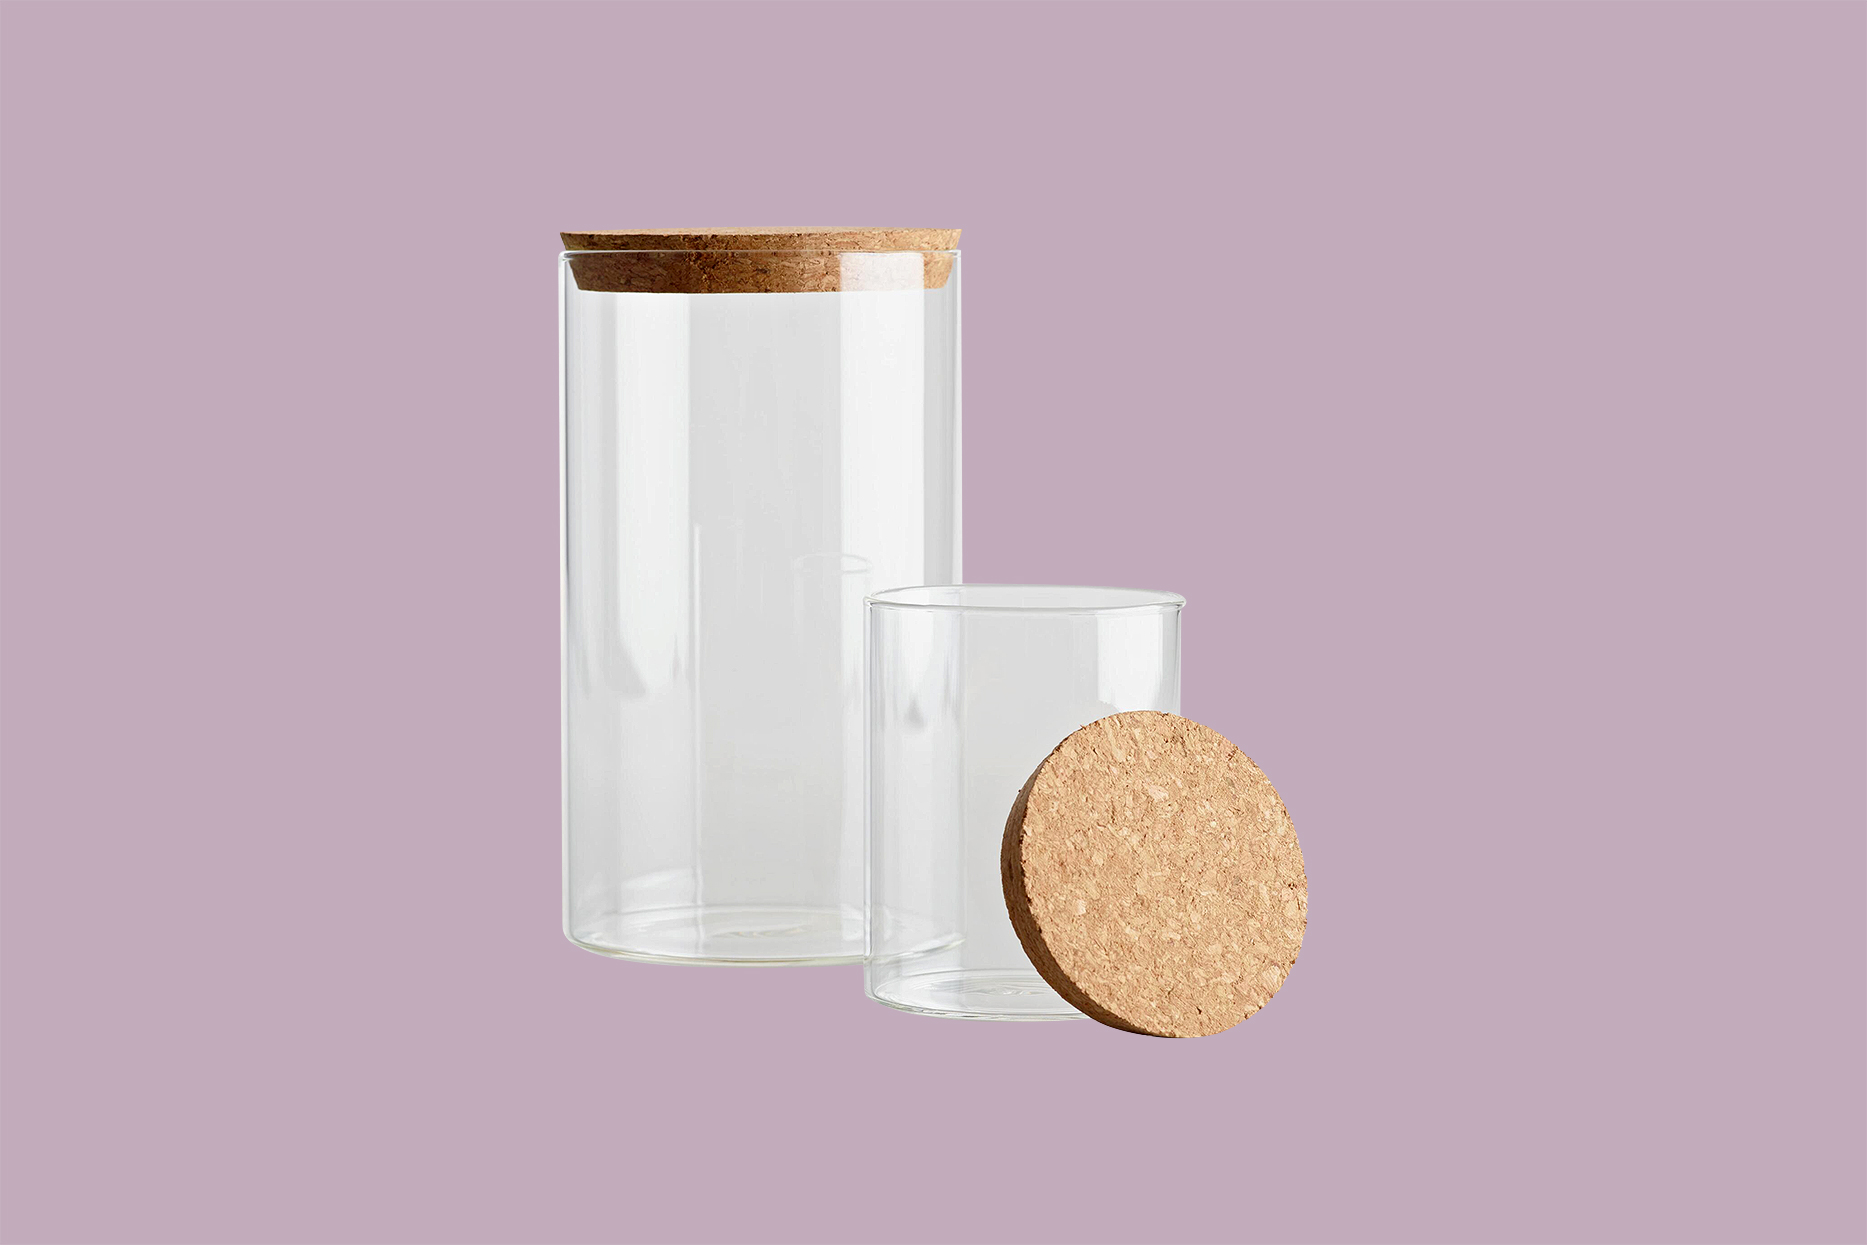 World Market Large and Small Glass Canisters with Cork